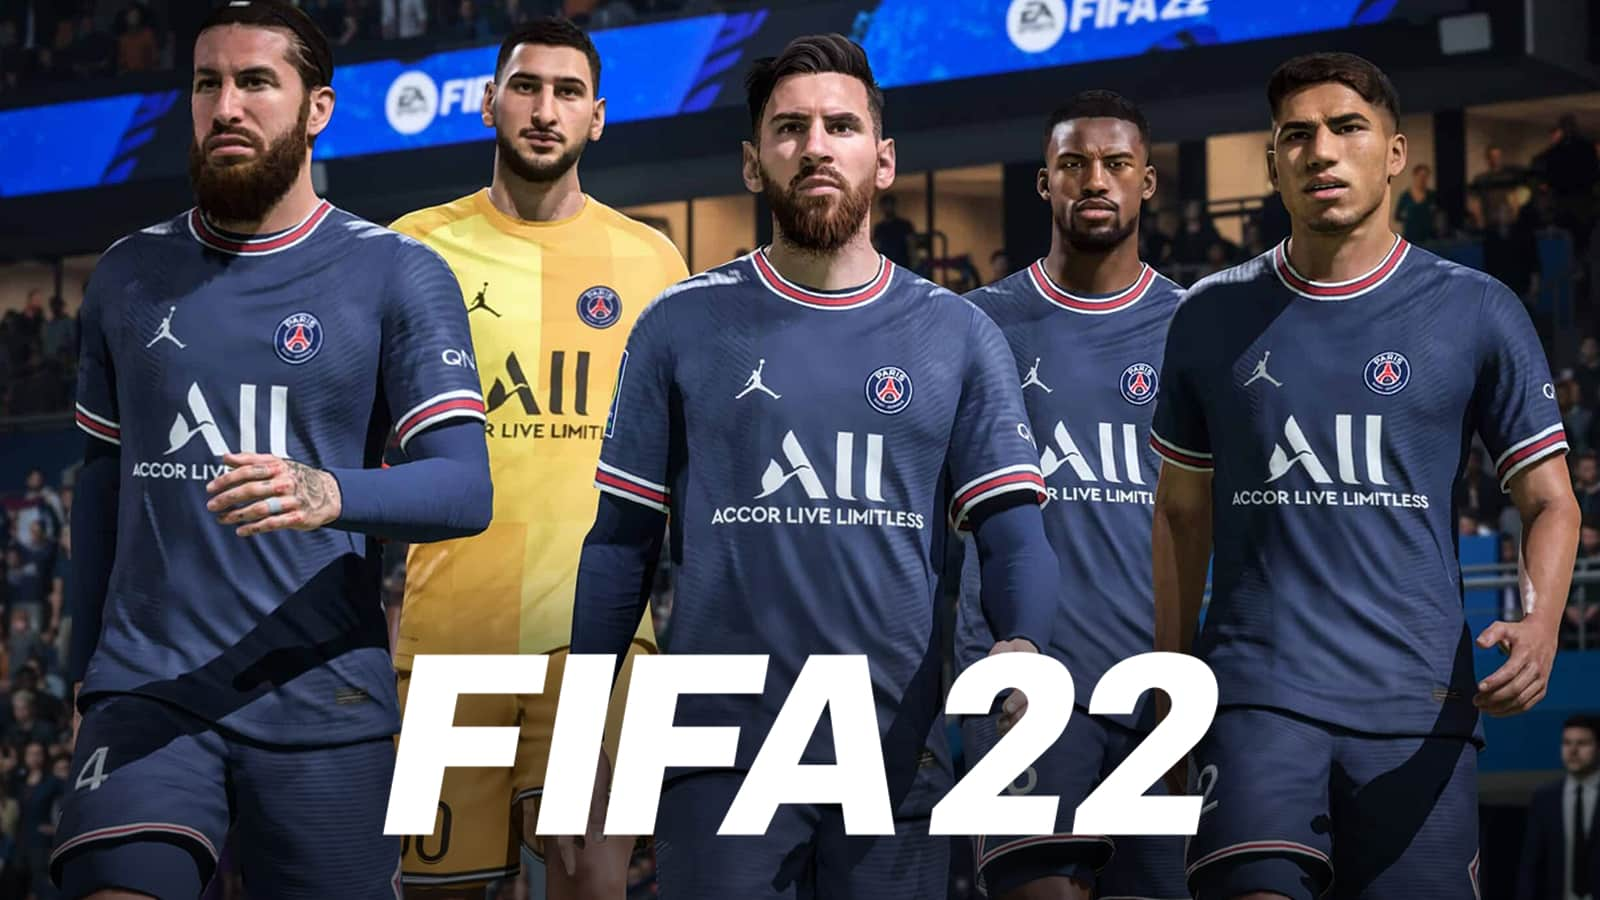 Download FIFA 22 Apk Messi to PSG Android PS5